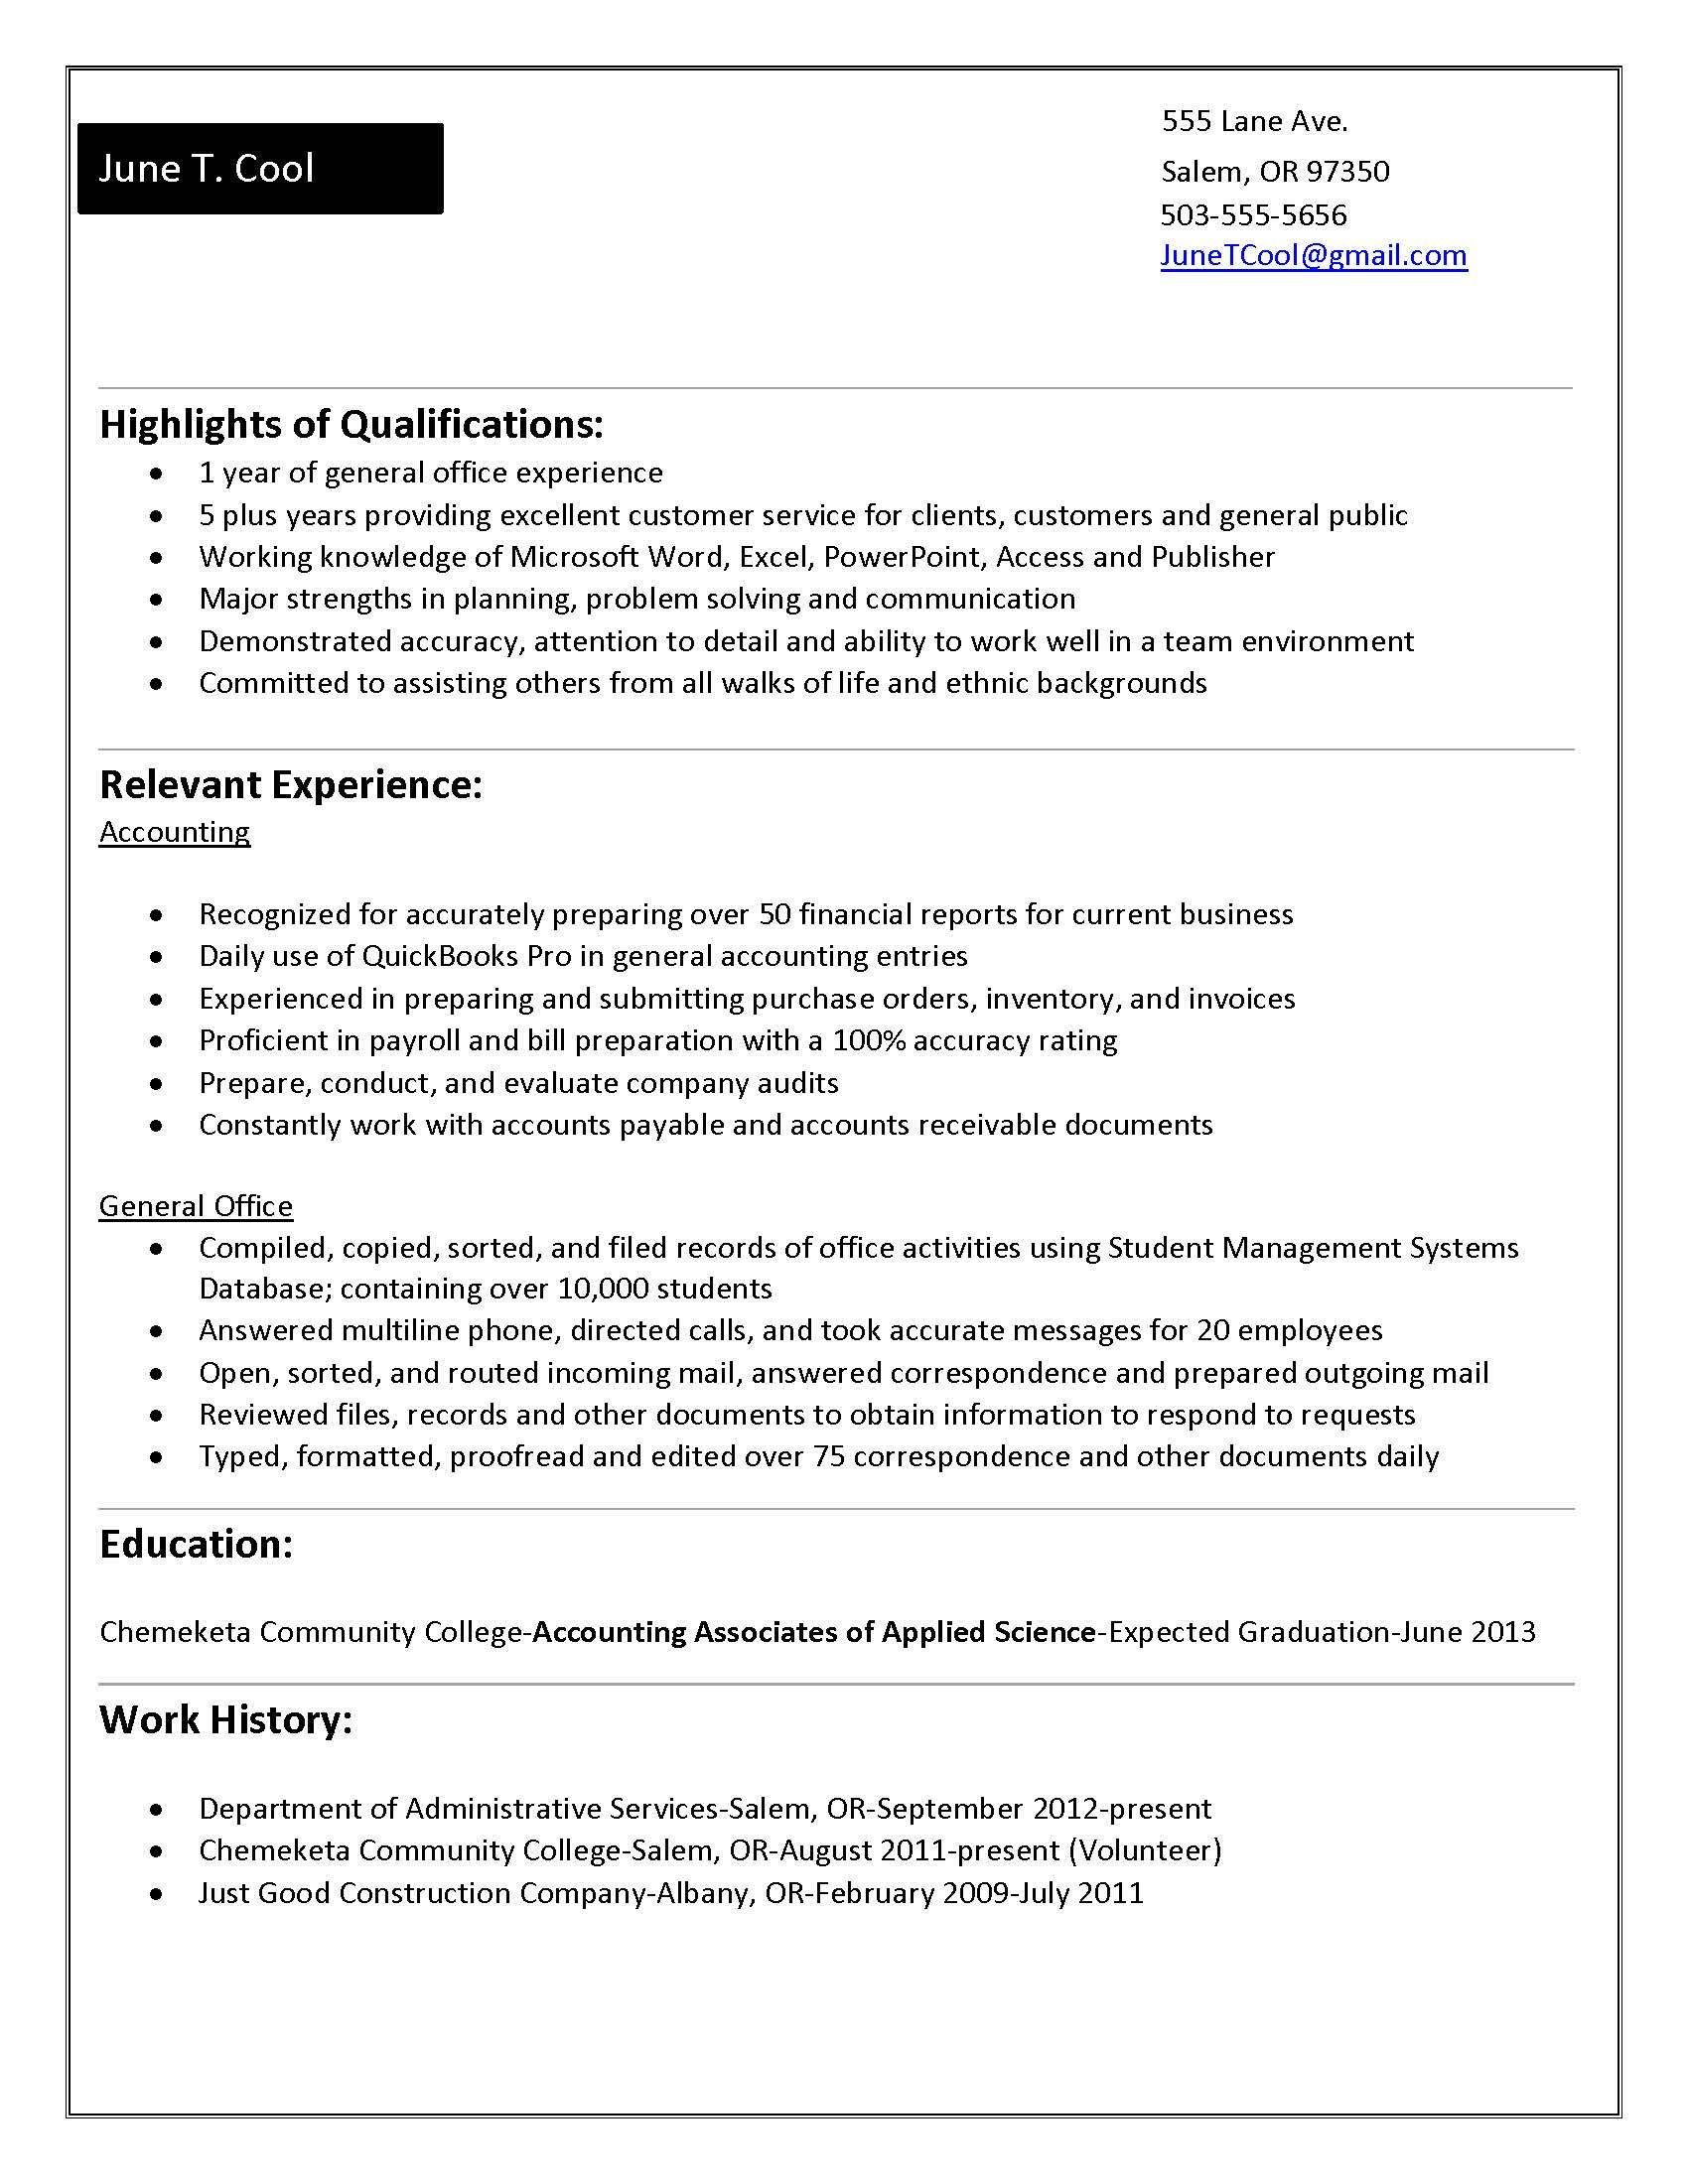 Resume Examples For Students With Little Experience Adorable Google Resume Makerresume Sample Example Business Analyst Examples .